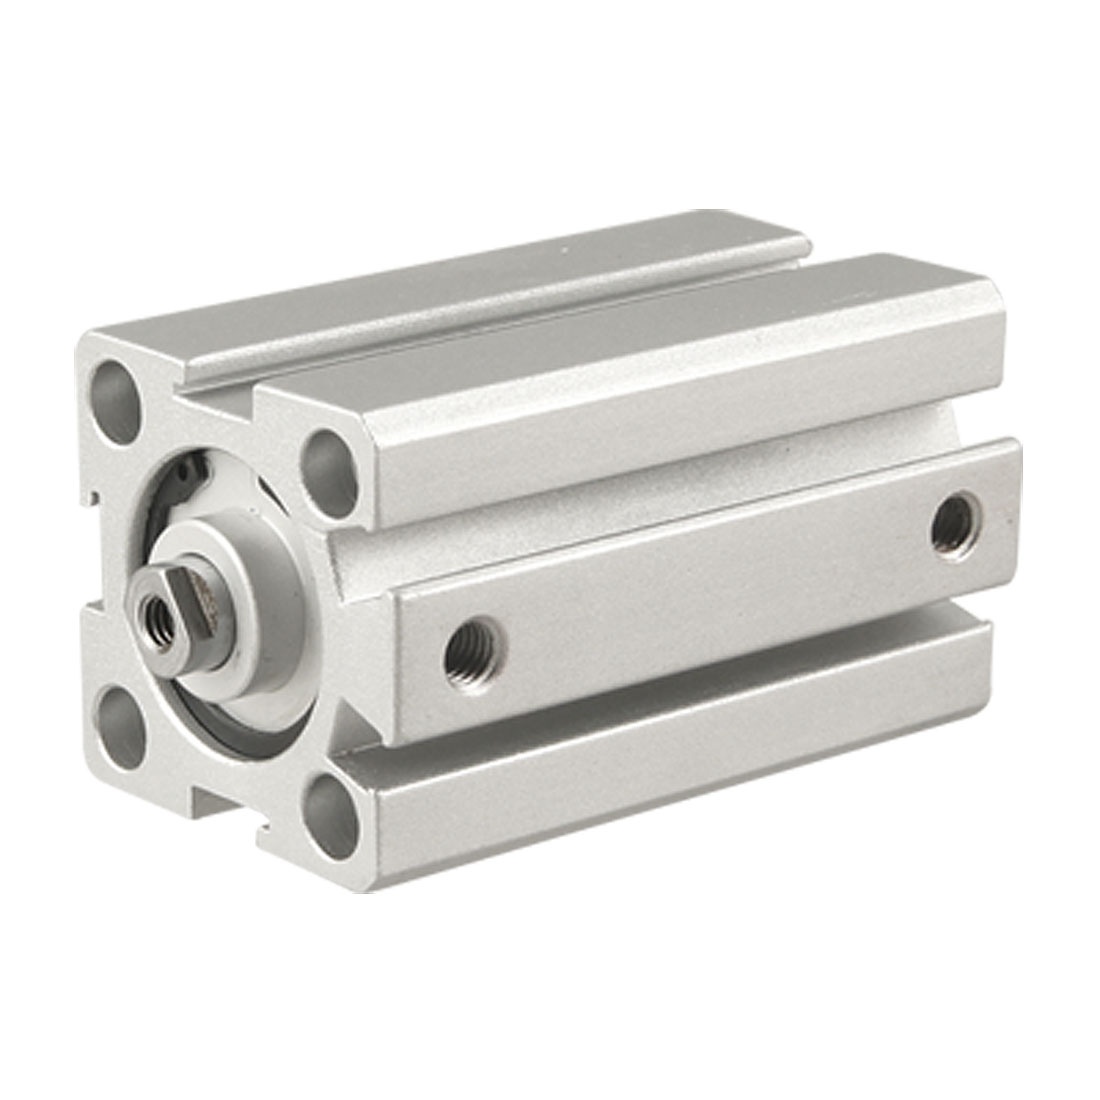 SDA Series 20mm Bore 40mm Stroke Single Rod Pneumatic Cylinder